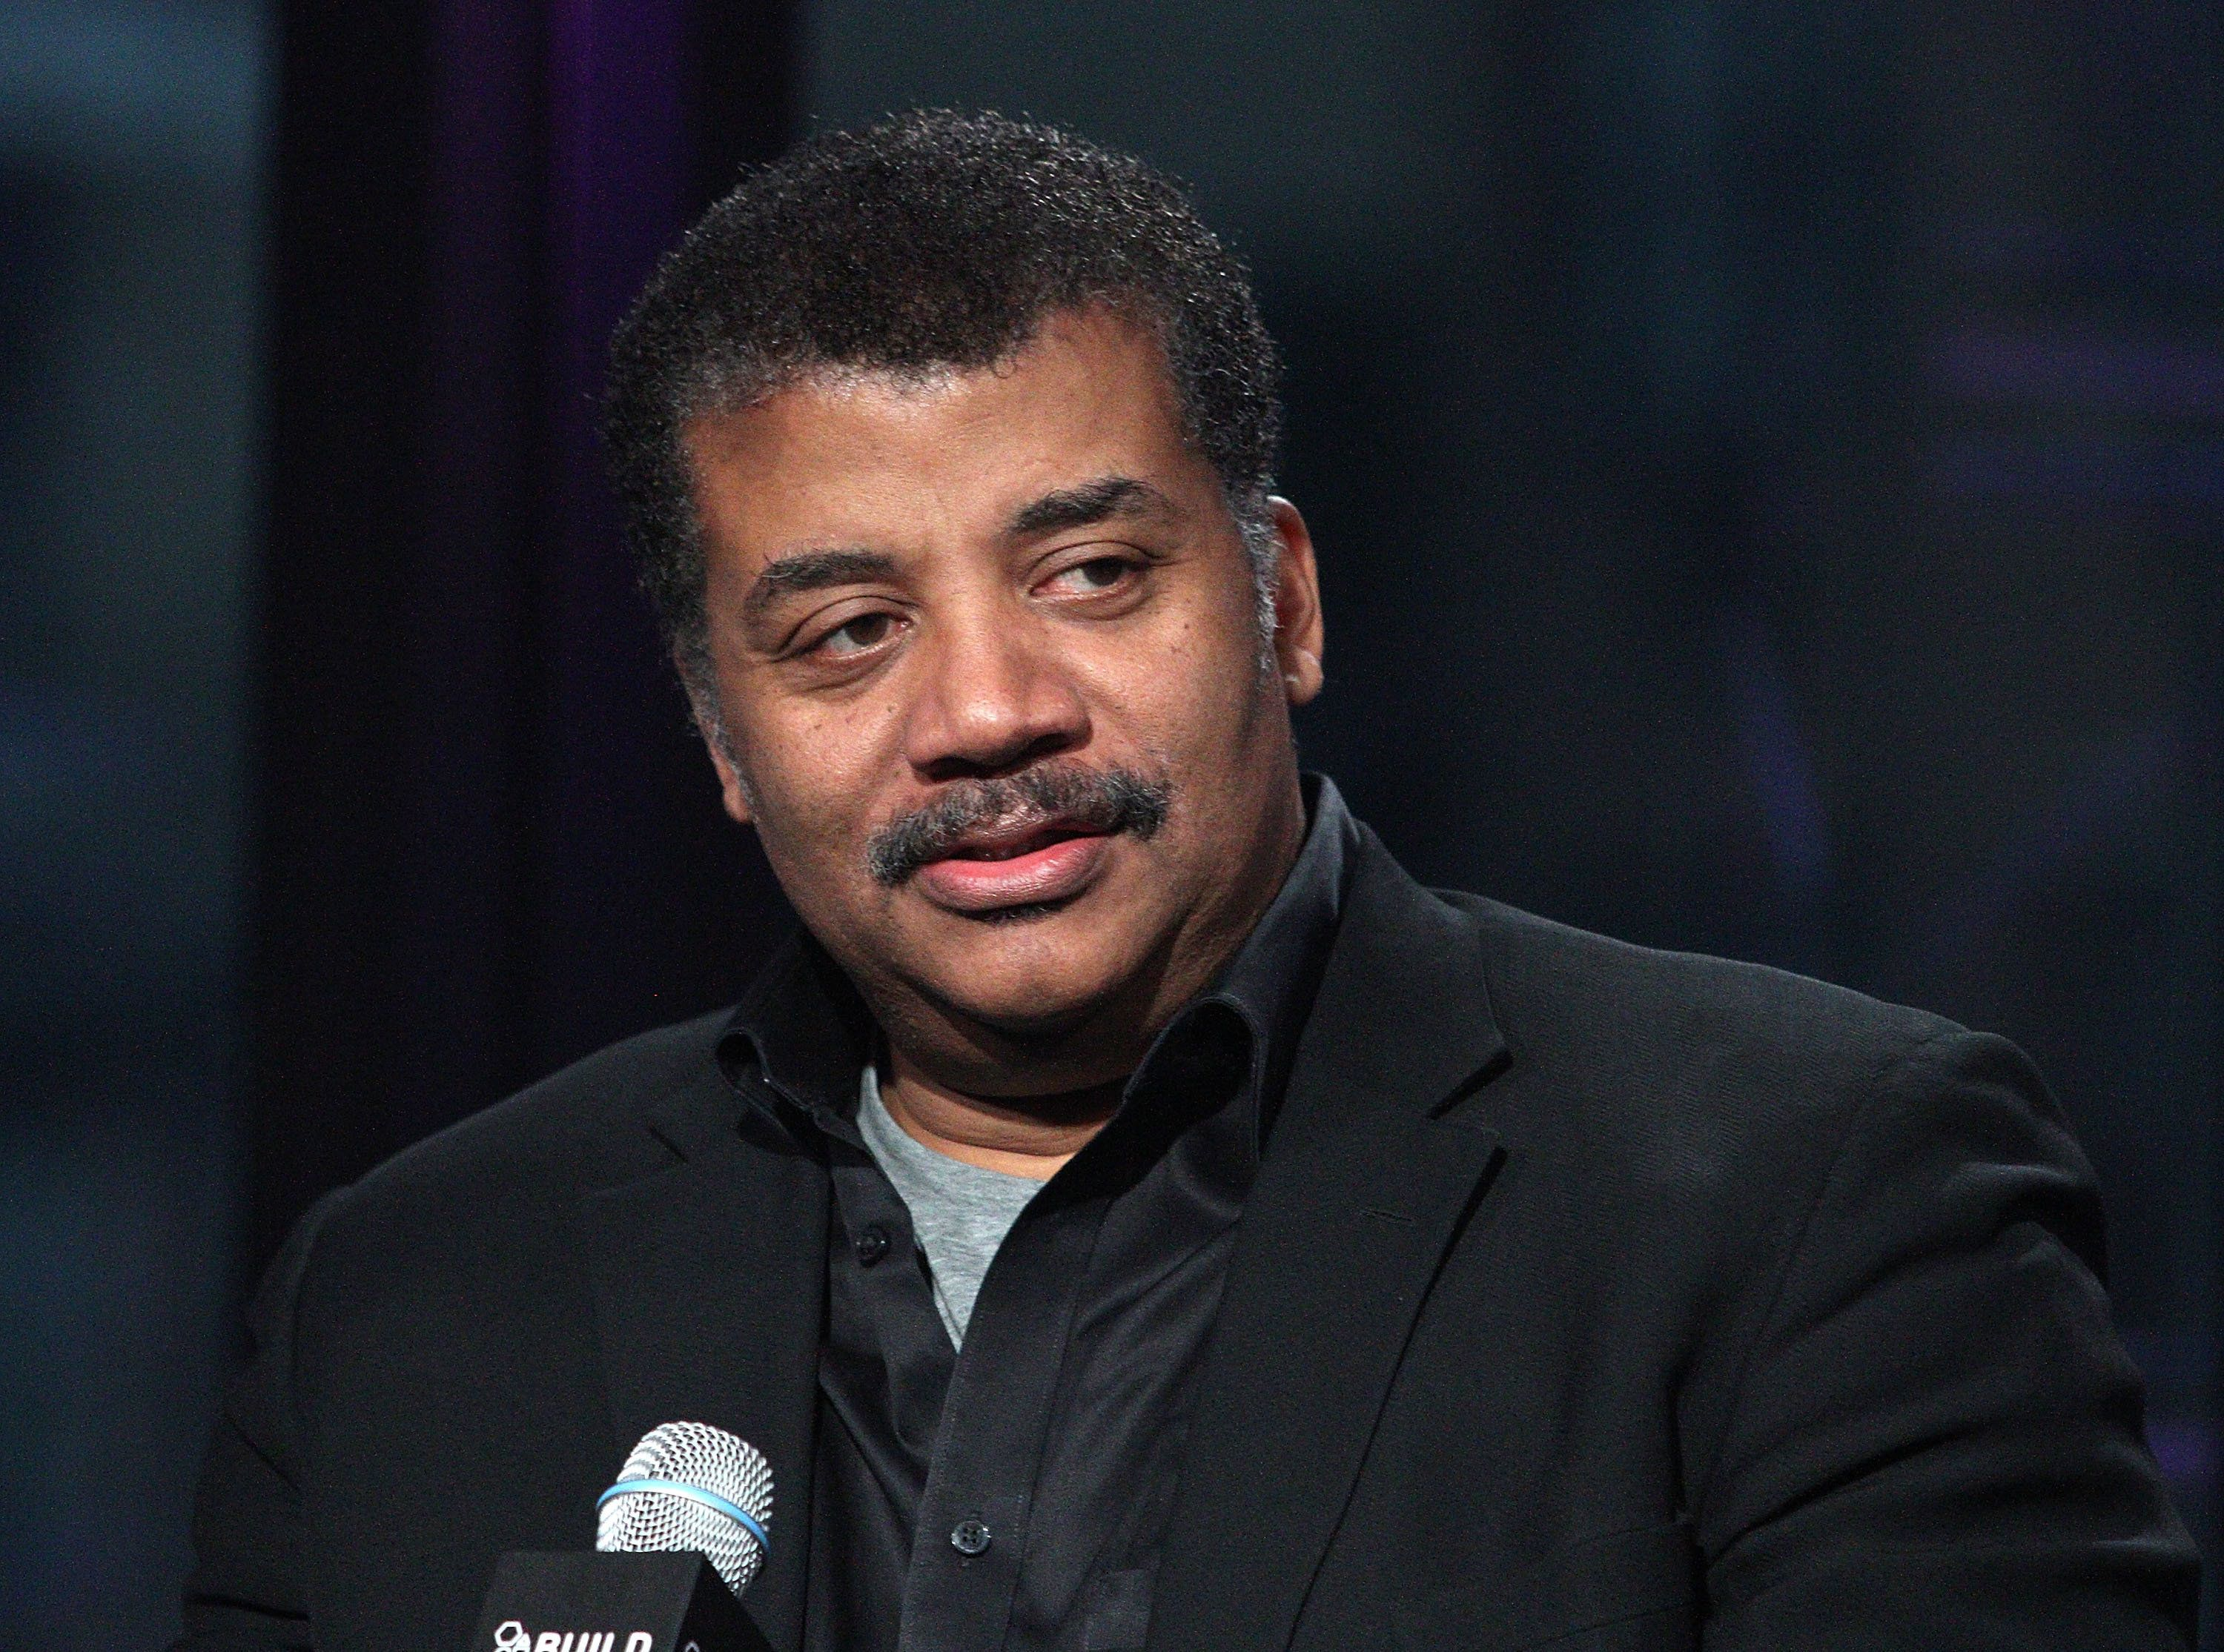 NEW YORK, NY - OCTOBER 28:  Neil deGrasse Tyson attends AOL BUILD Presents: 'Star Talk' at AOL Studios In New York on October 28, 2015 in New York City.  (Photo by Laura Cavanaugh/FilmMagic)